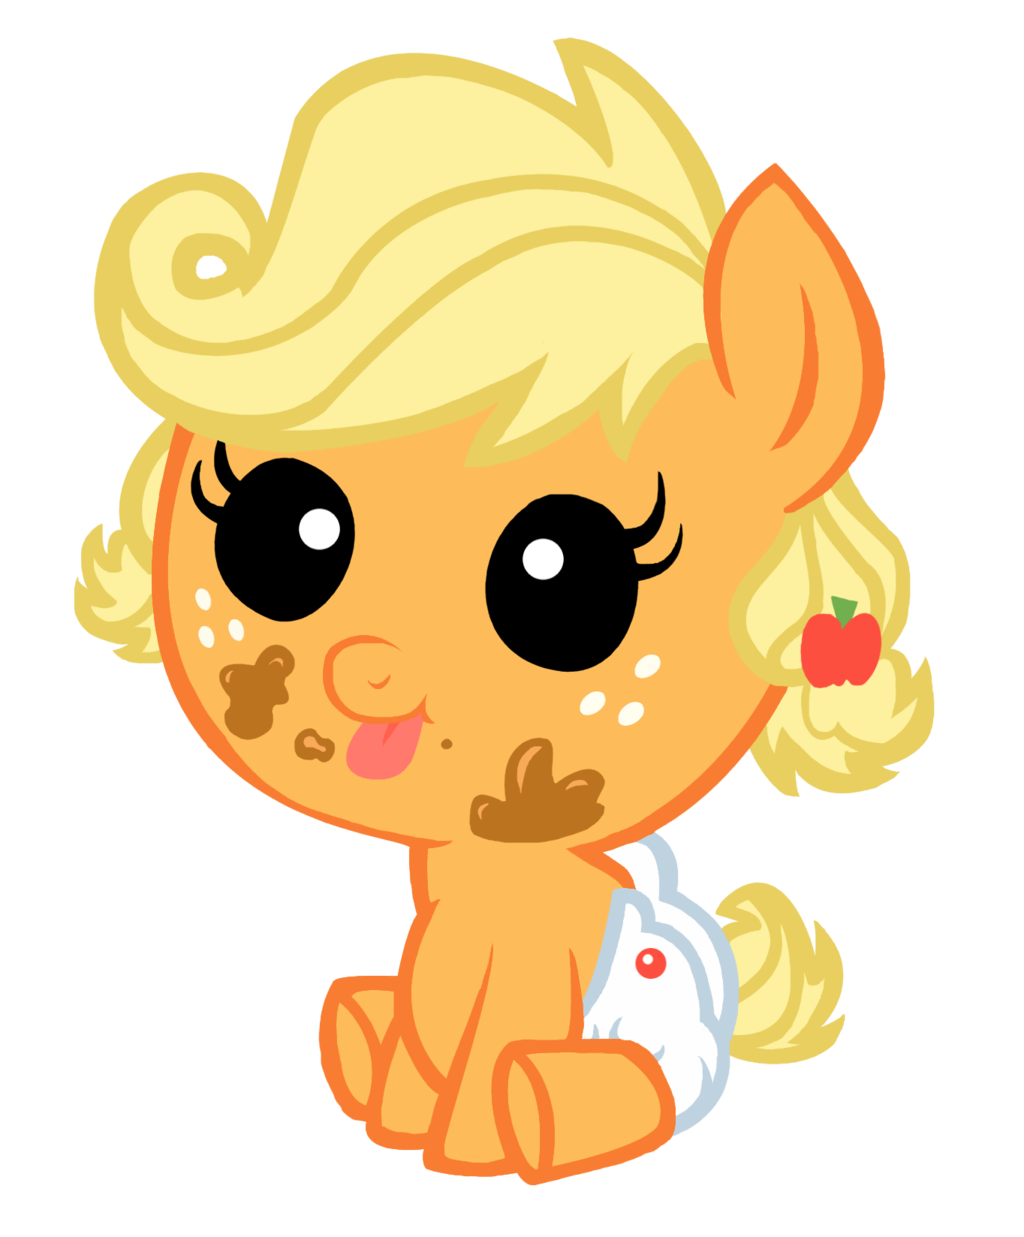 My little pony baby applejack - photo#25